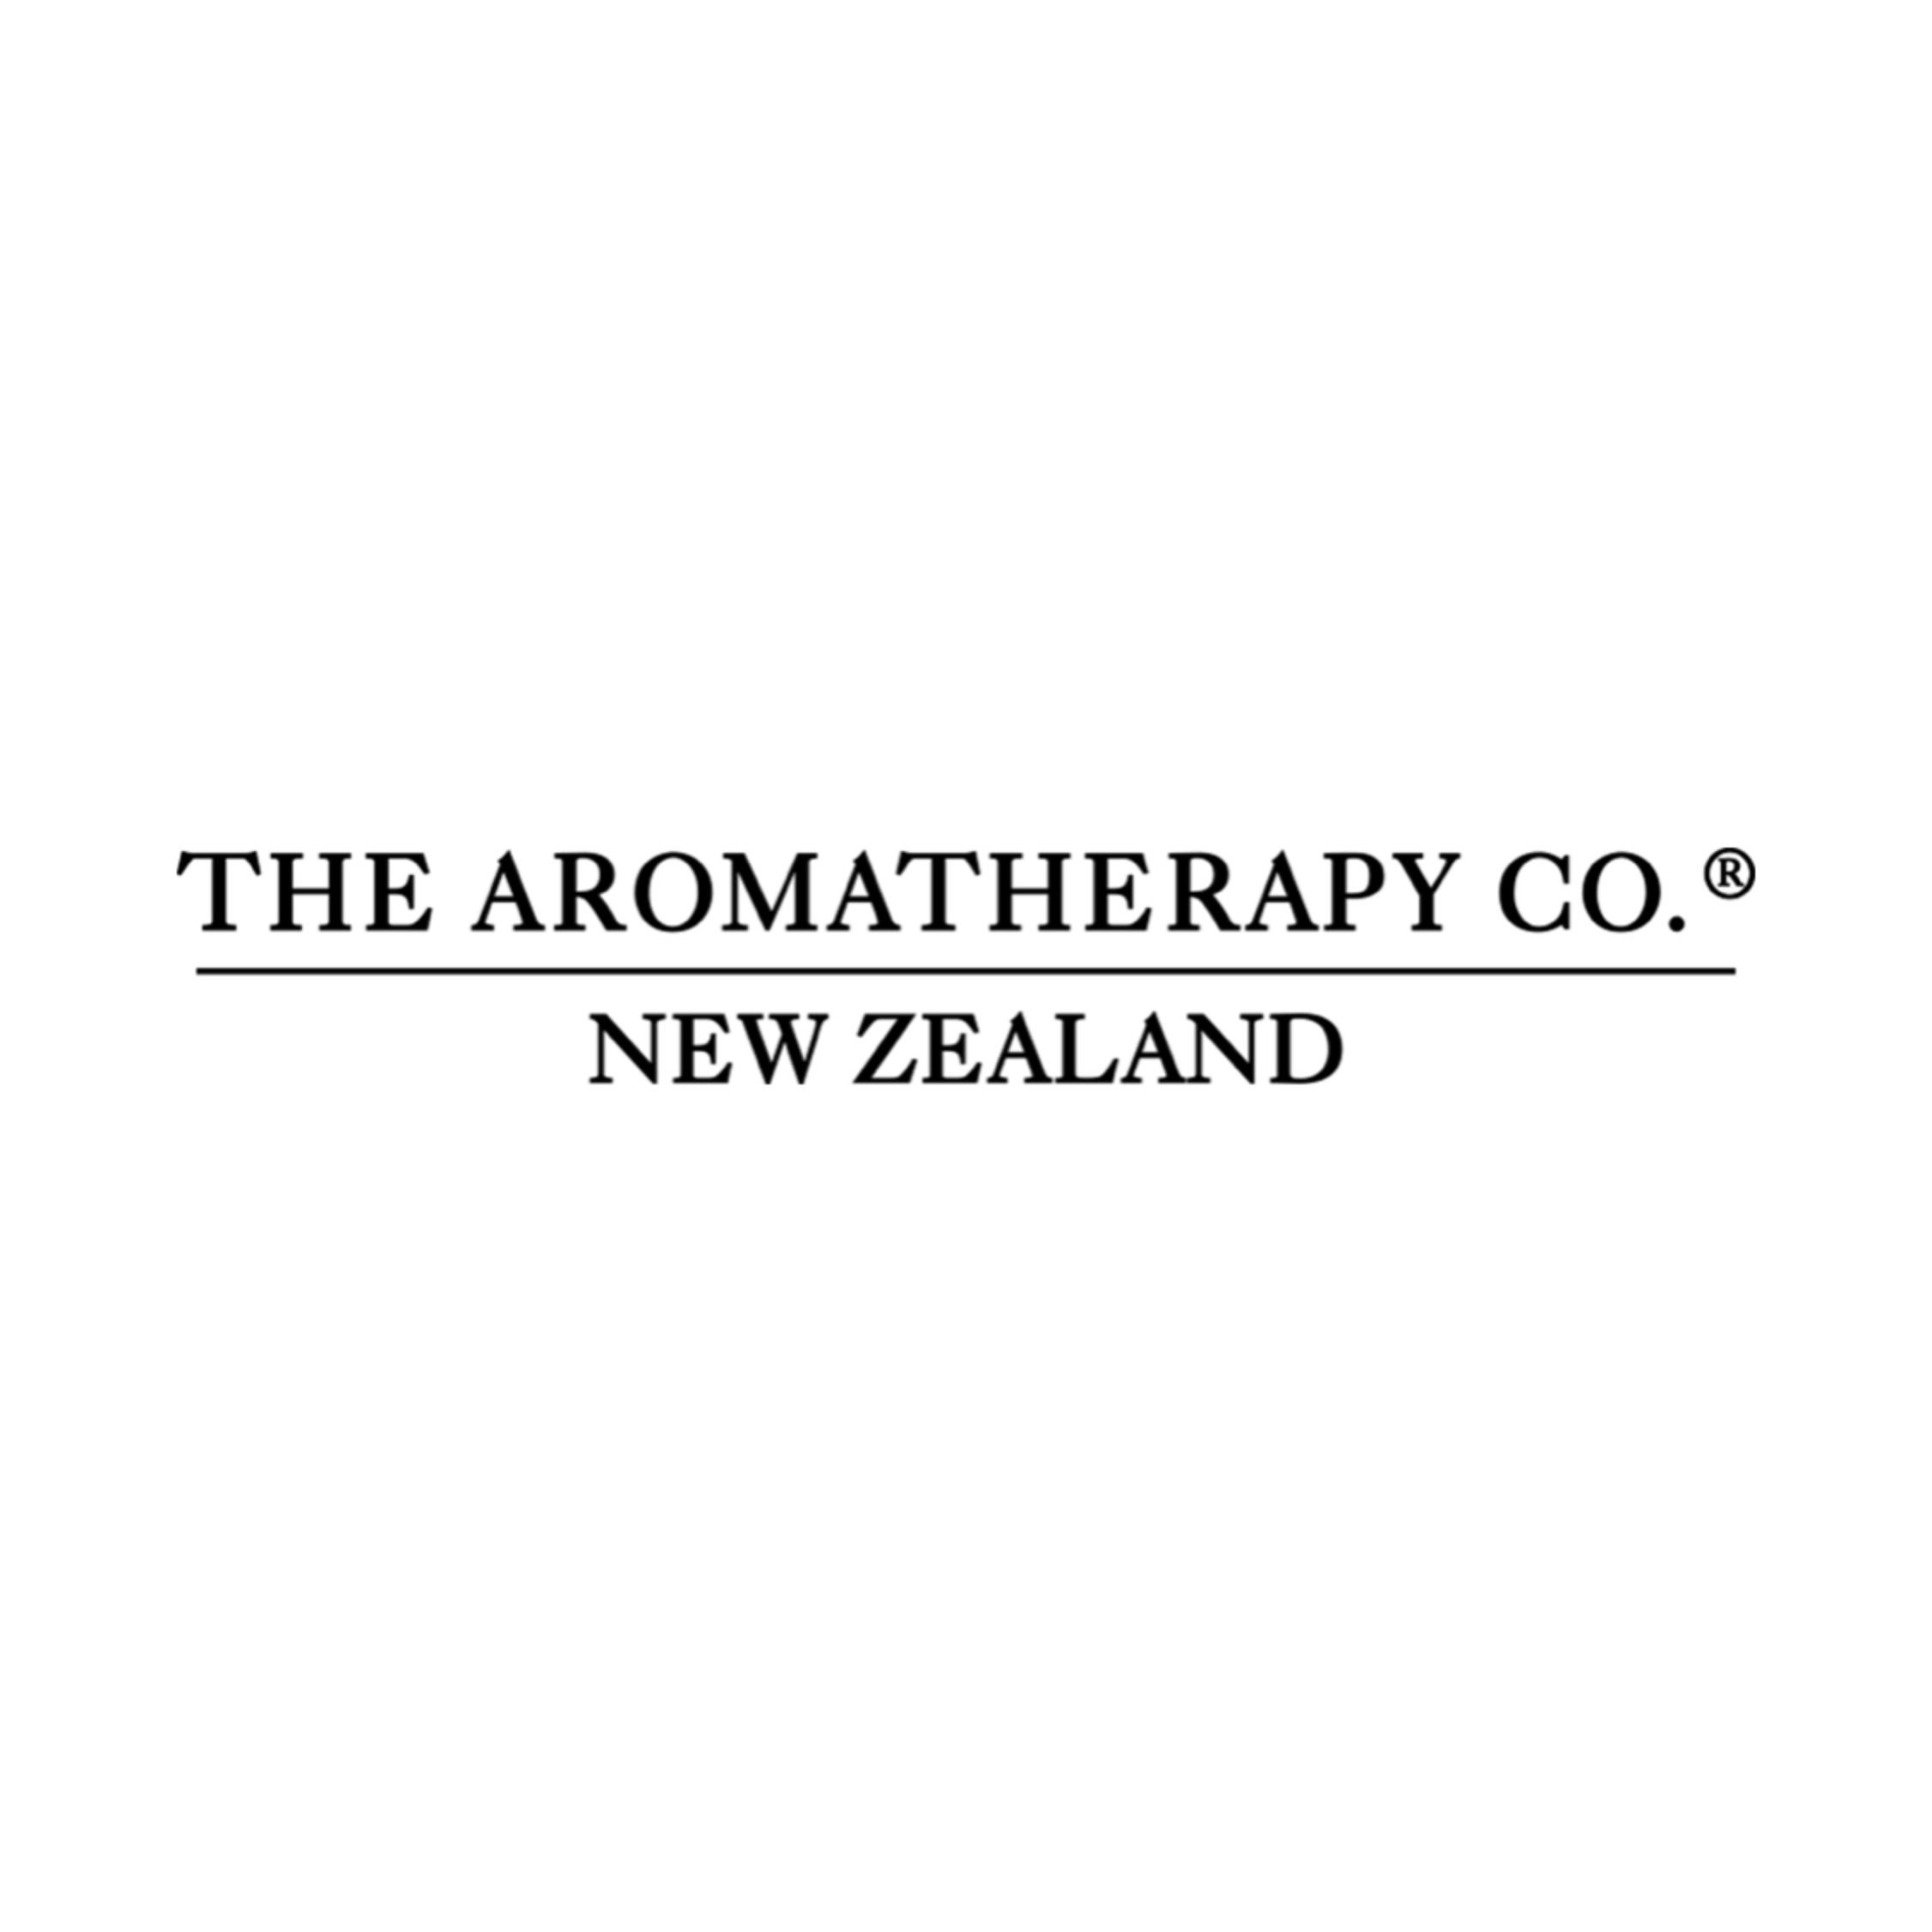 THE AROMATHERAPY CO.